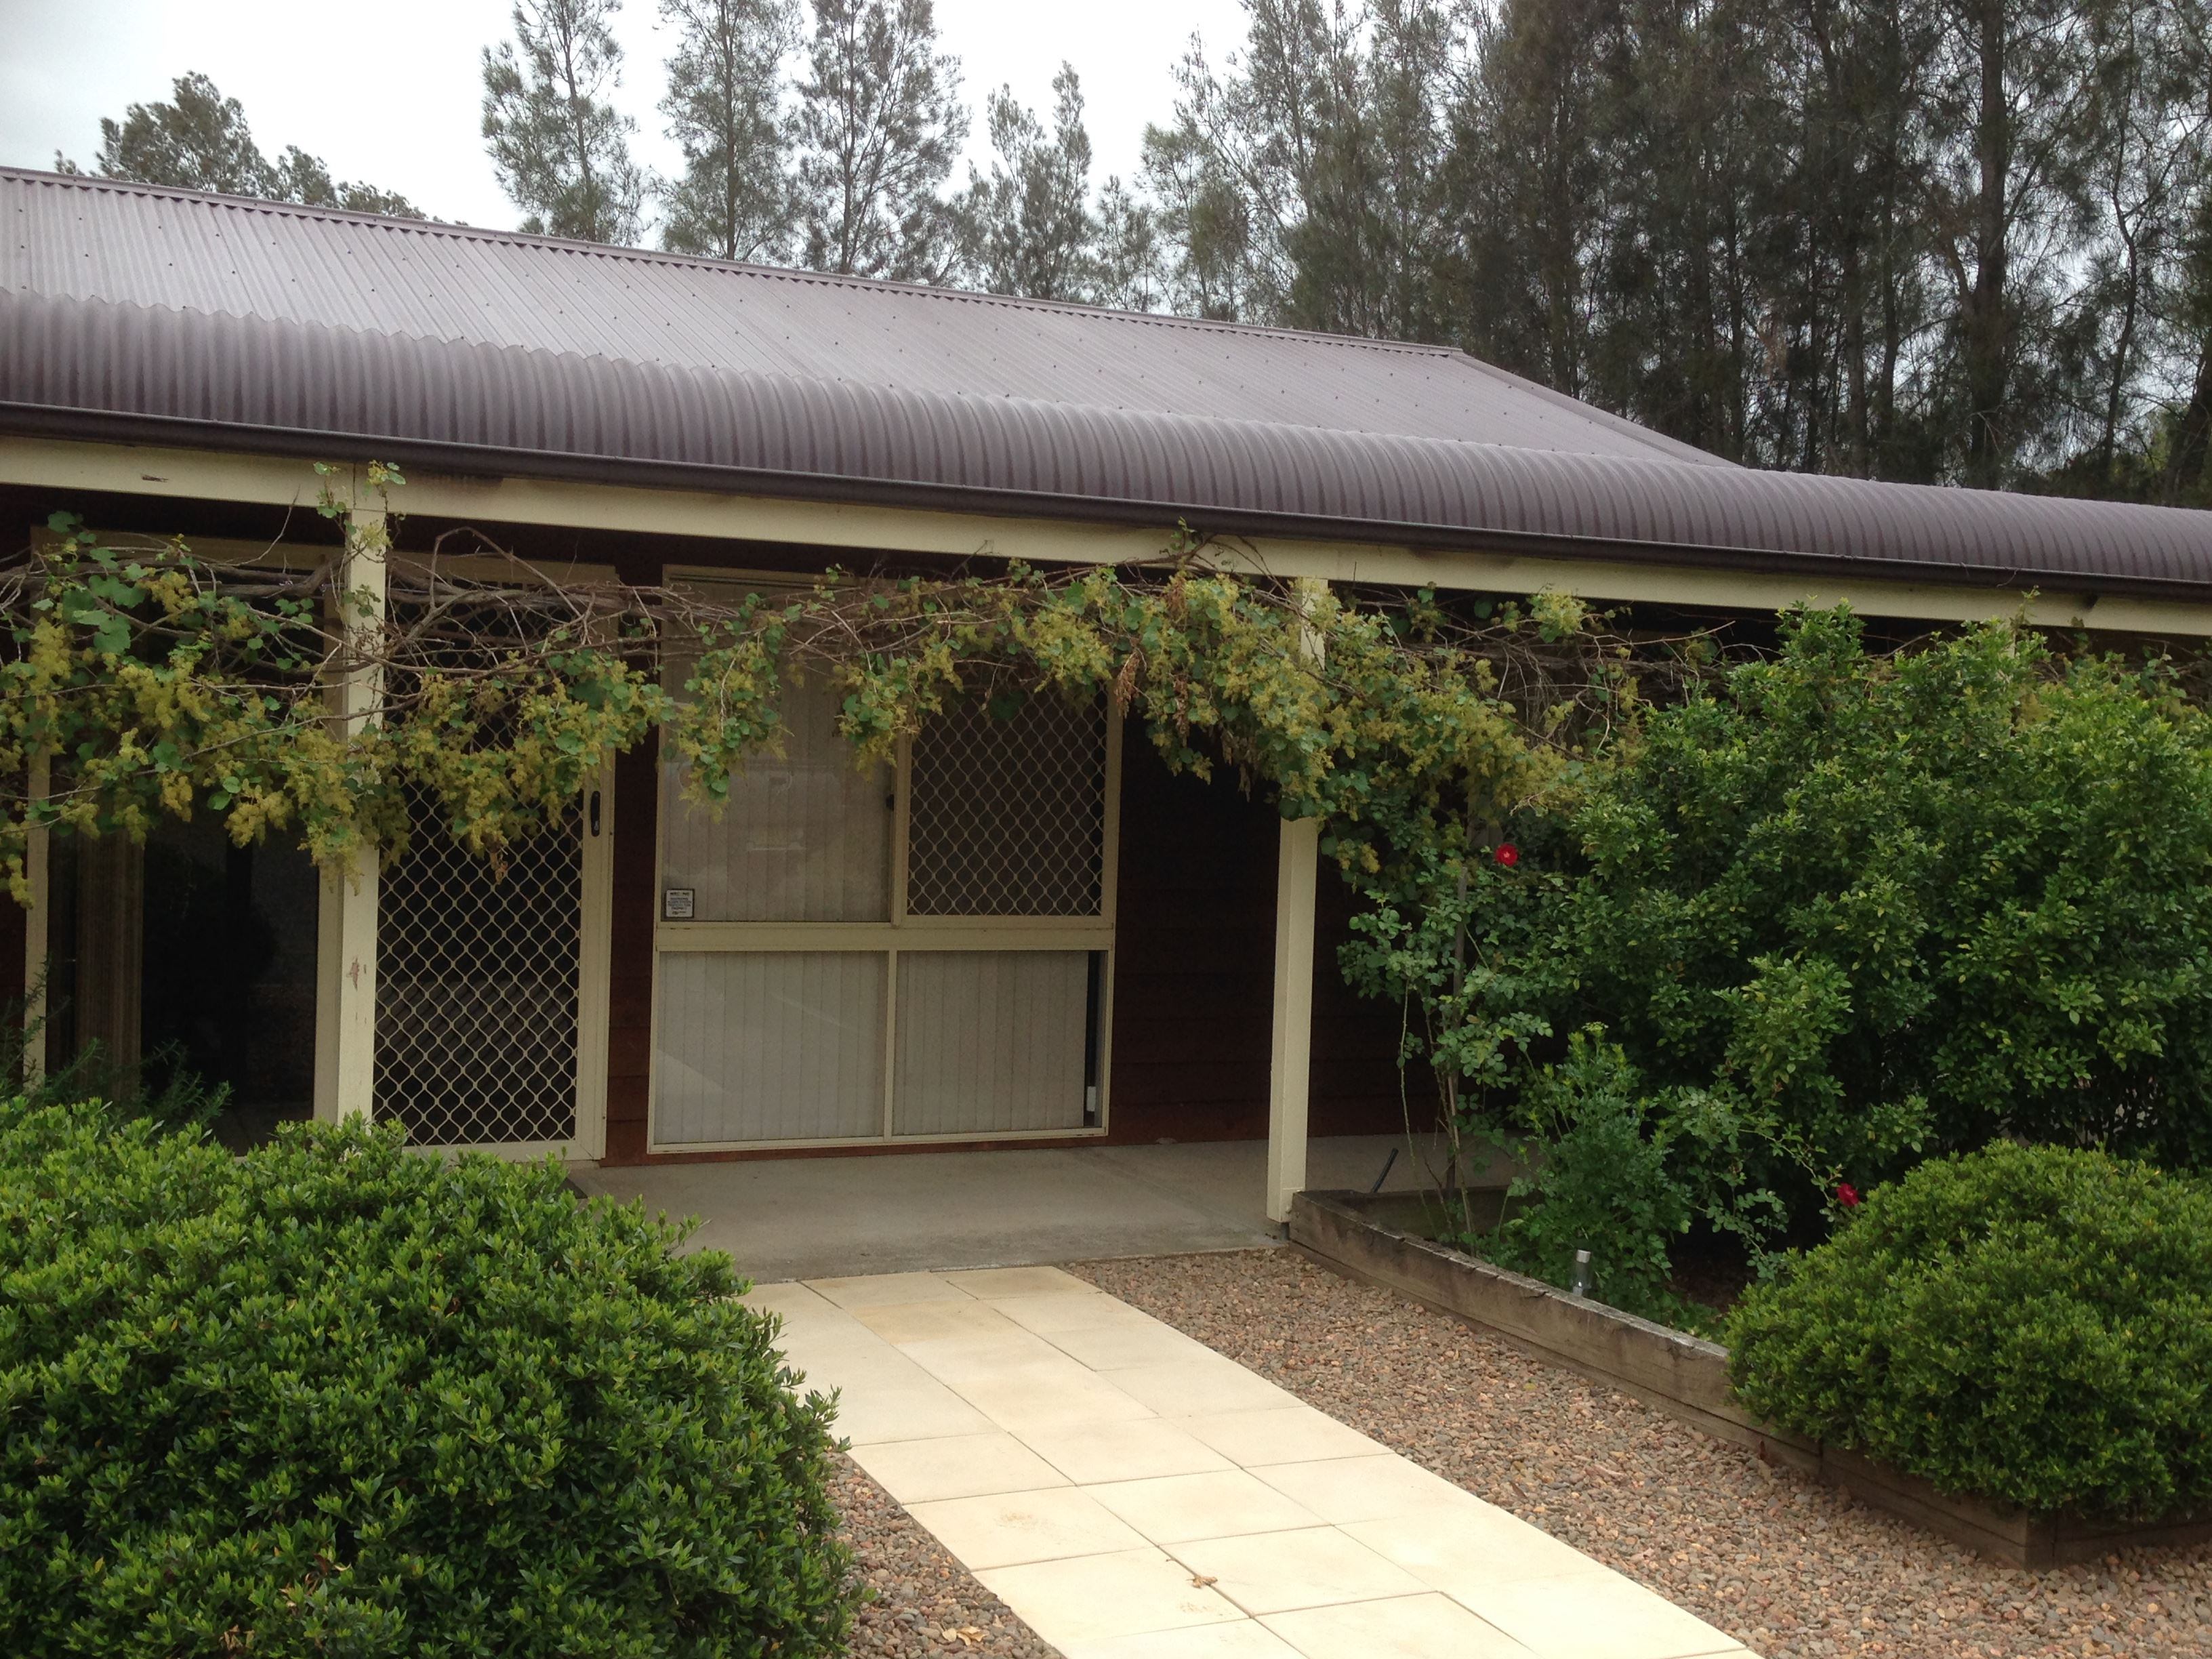 Mount Clunie Cabins - Accommodation Resorts